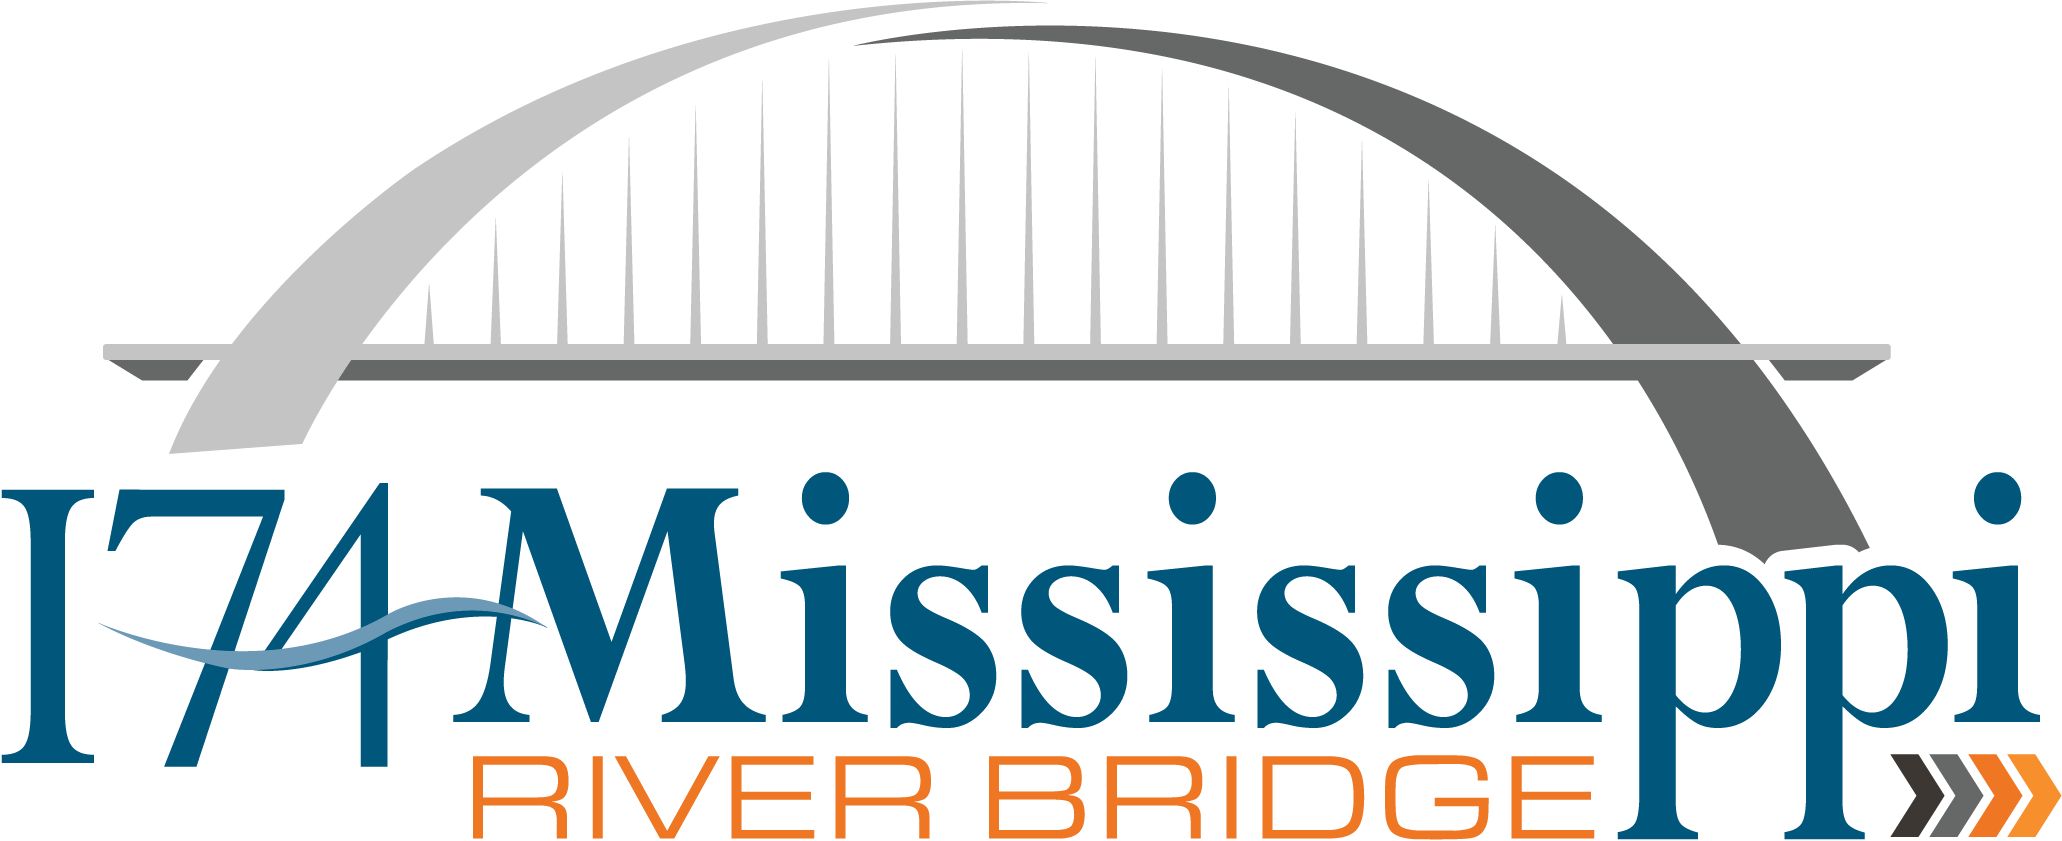 mississippi-river-bridge-construction-repair-foundation-drilling-transportation-highway-infrastructure-contractor-projects.png